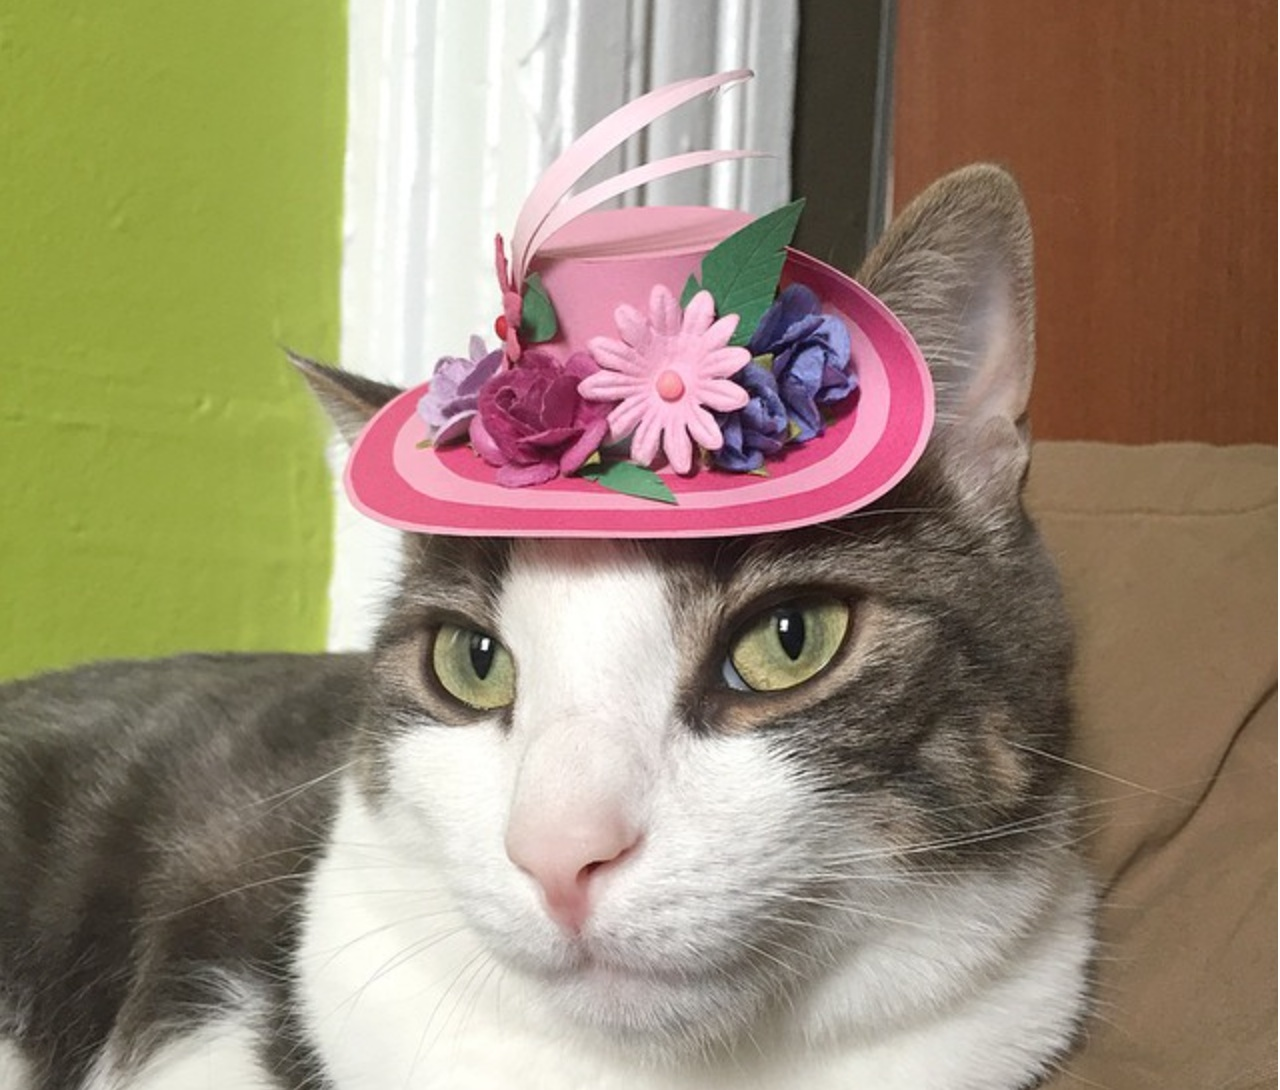 @TinyHatsOnCats is the Instagram account we never knew we needed